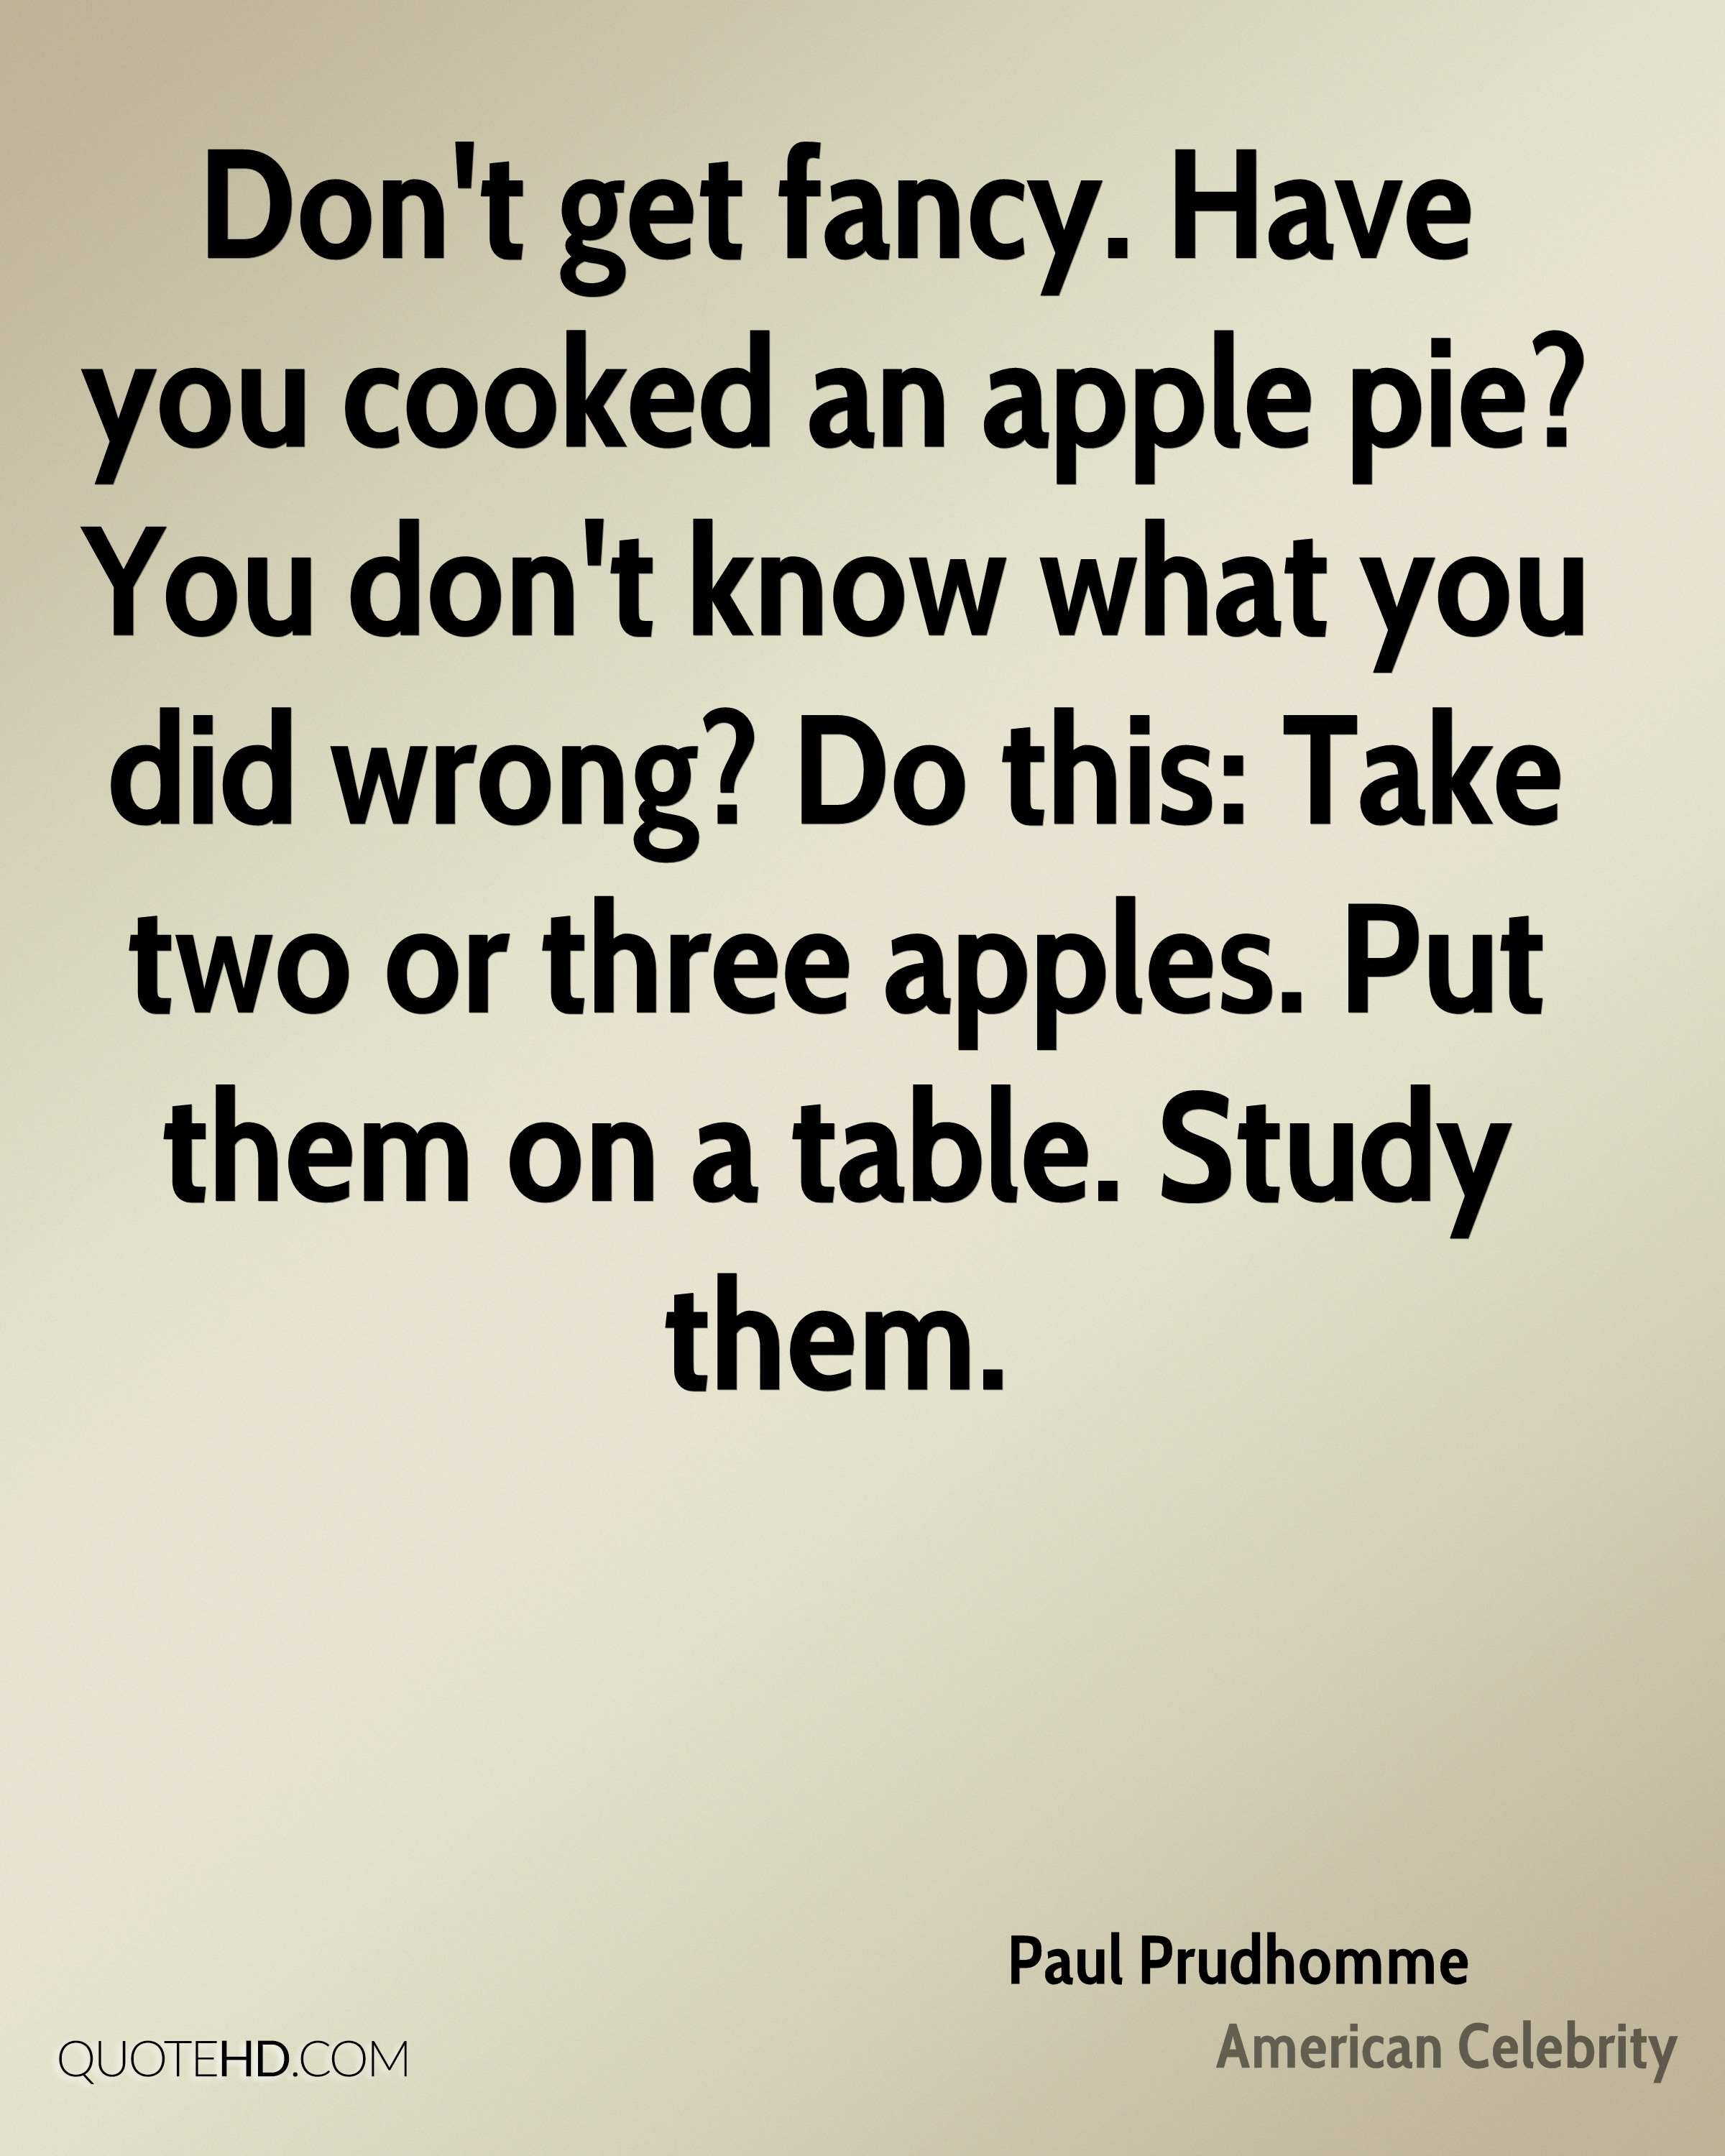 Don't get fancy. Have you cooked an apple pie? You don't know what you did wrong? Do this: Take two or three apples. Put them on a table. Study them.